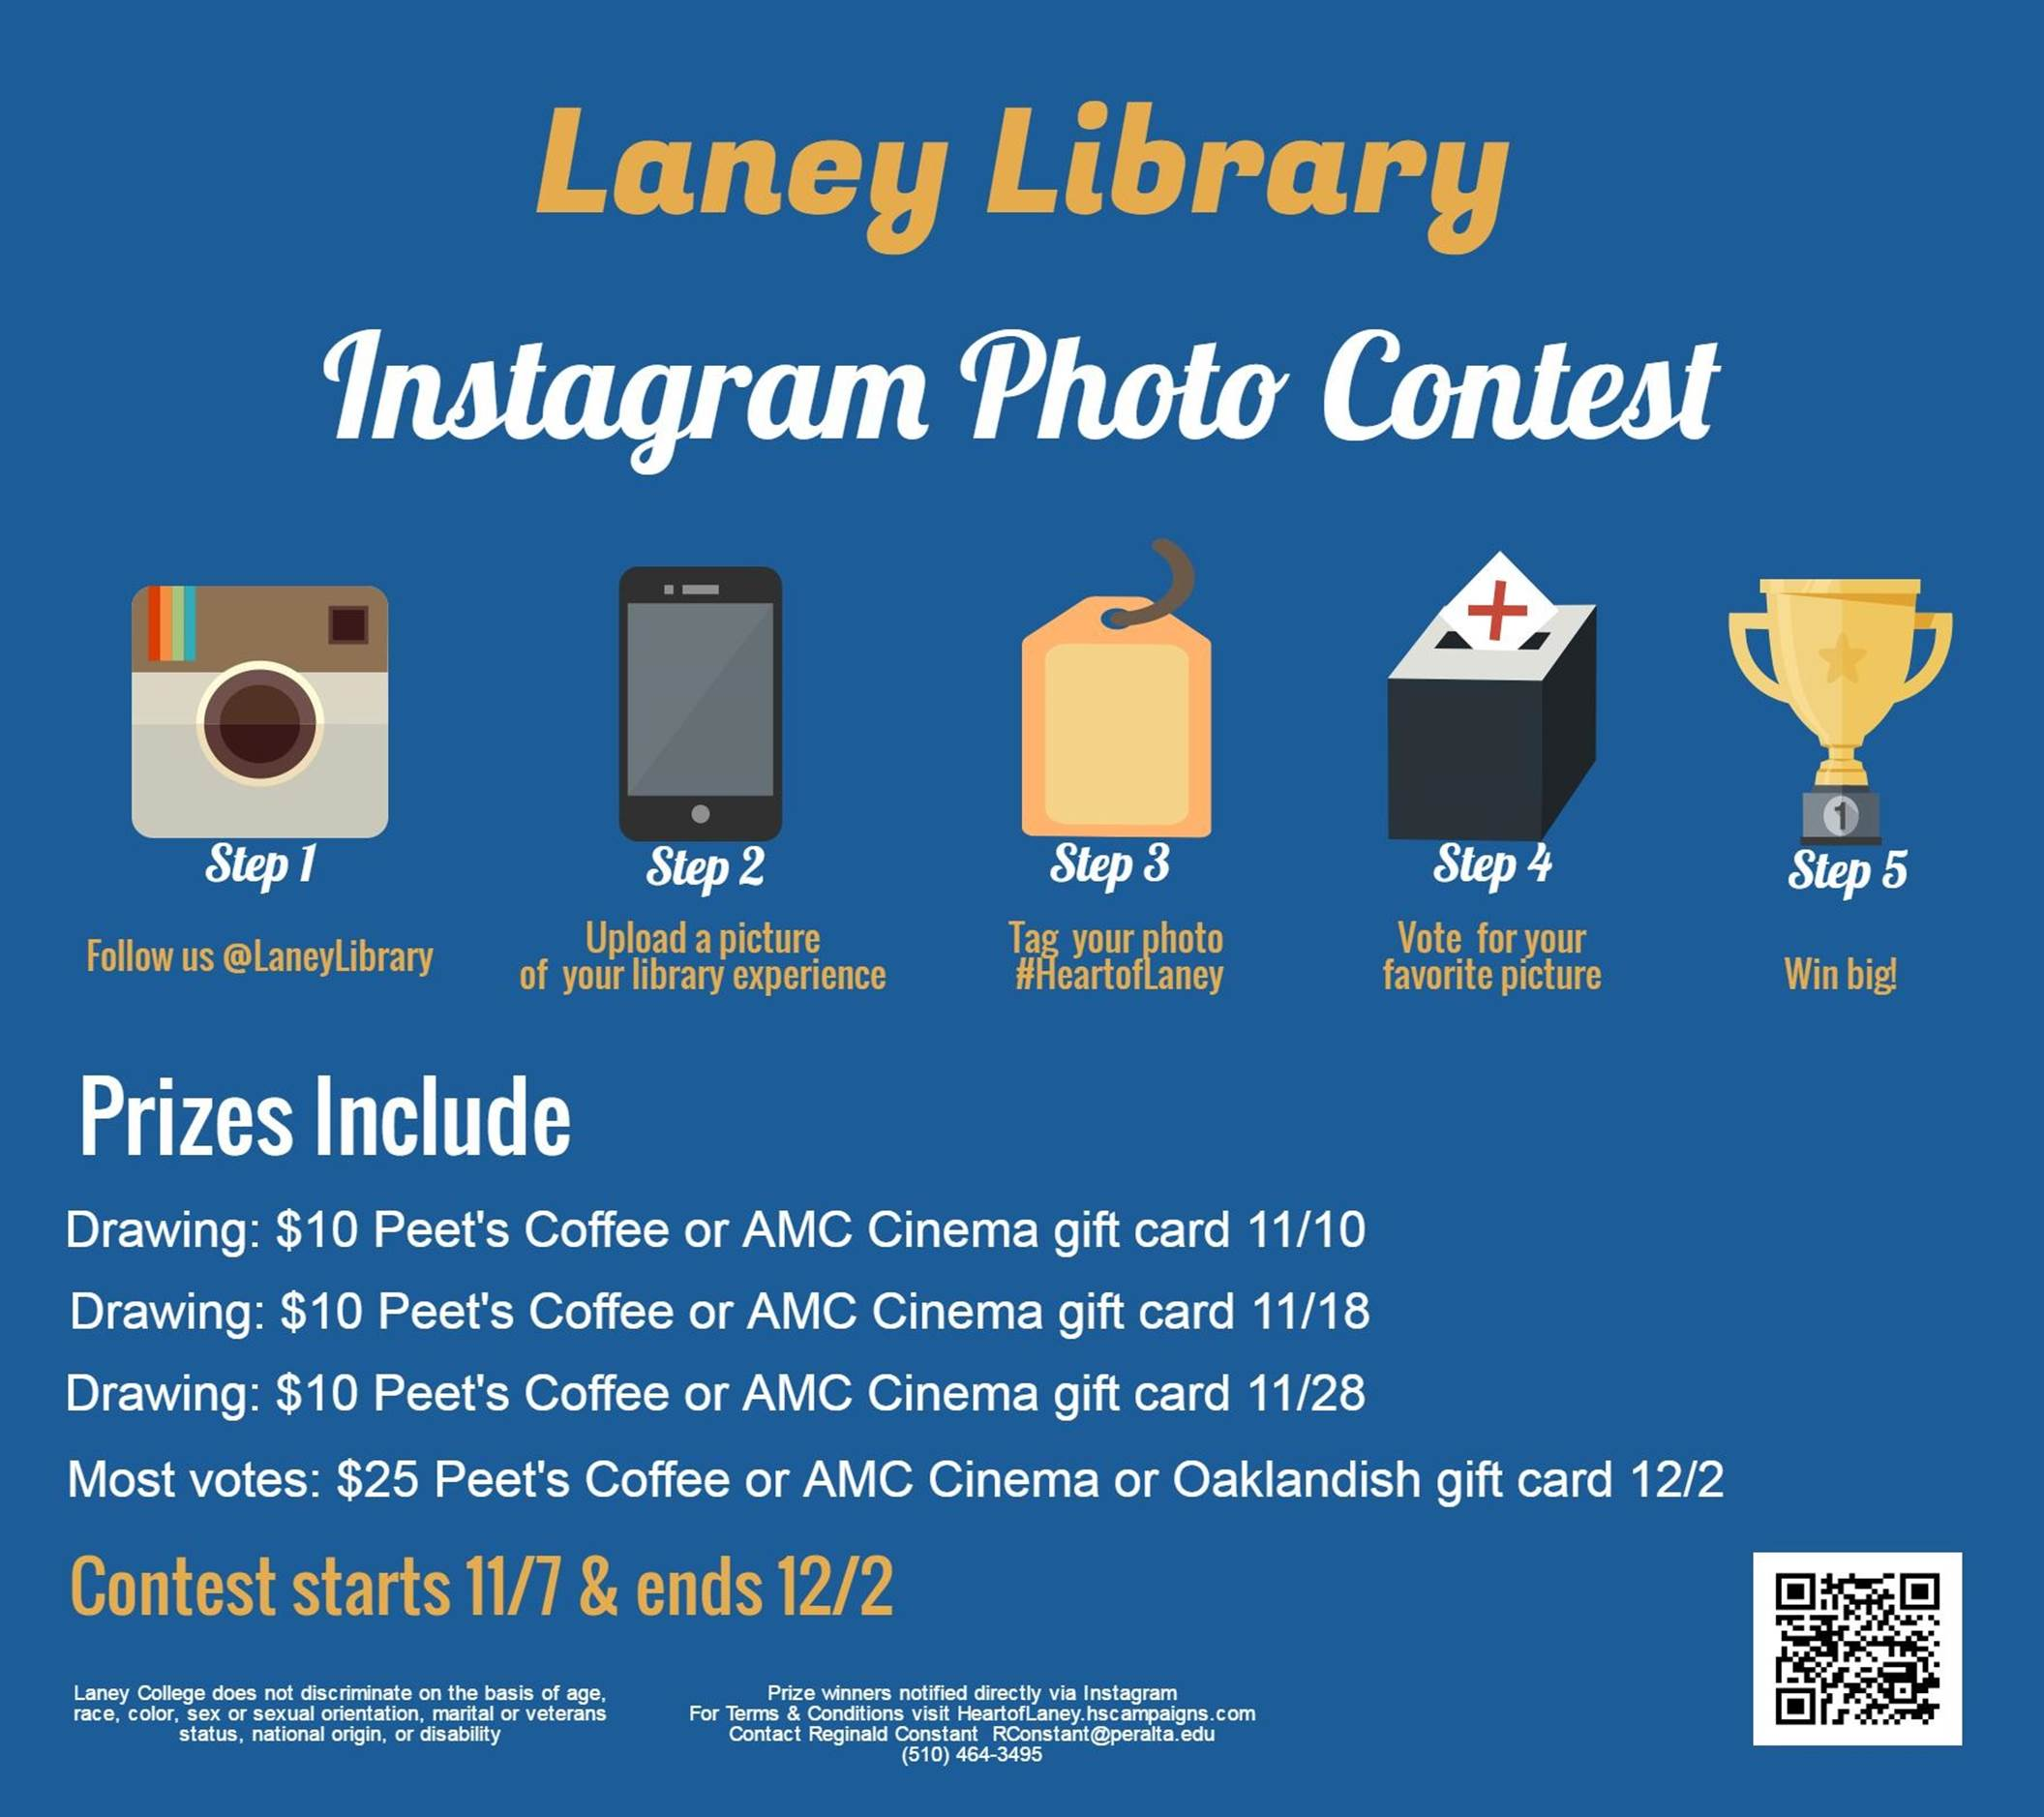 lc-instagram-photo-contest